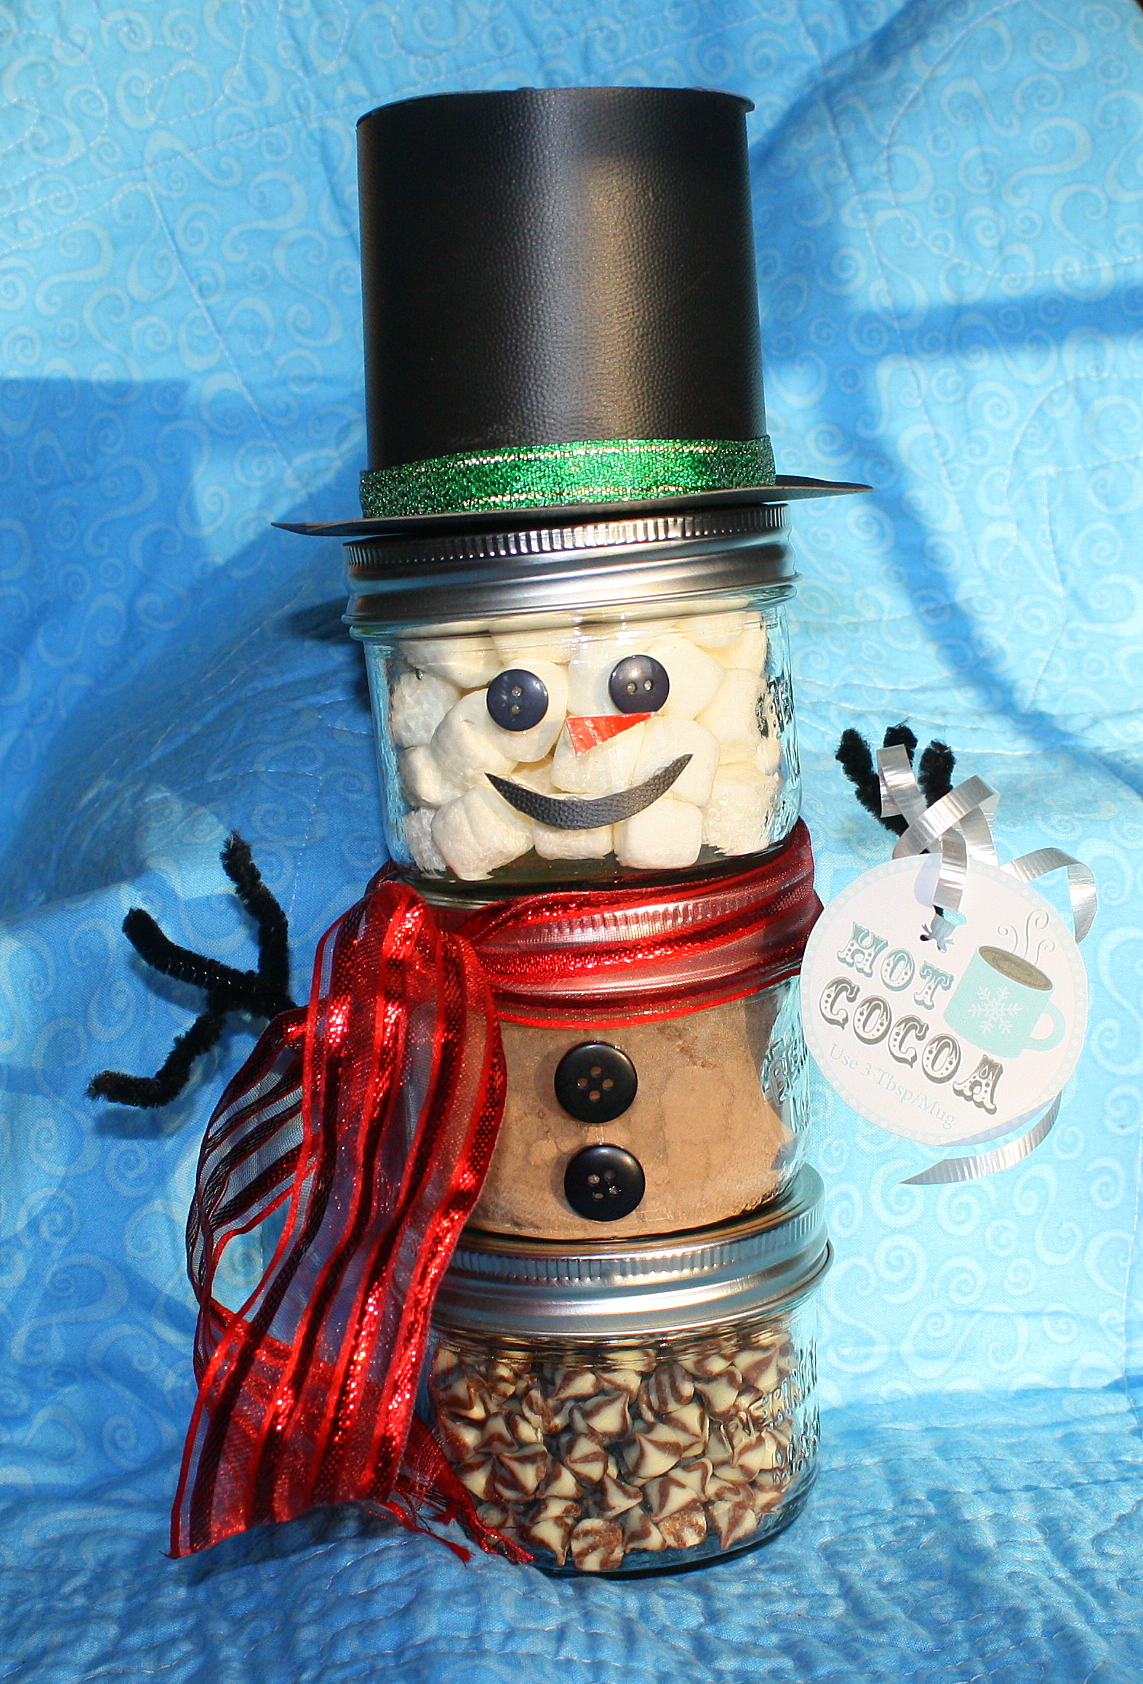 Hot Cocoa Mix in a Jar - Gifts from the Kitchen - Getty Stewart